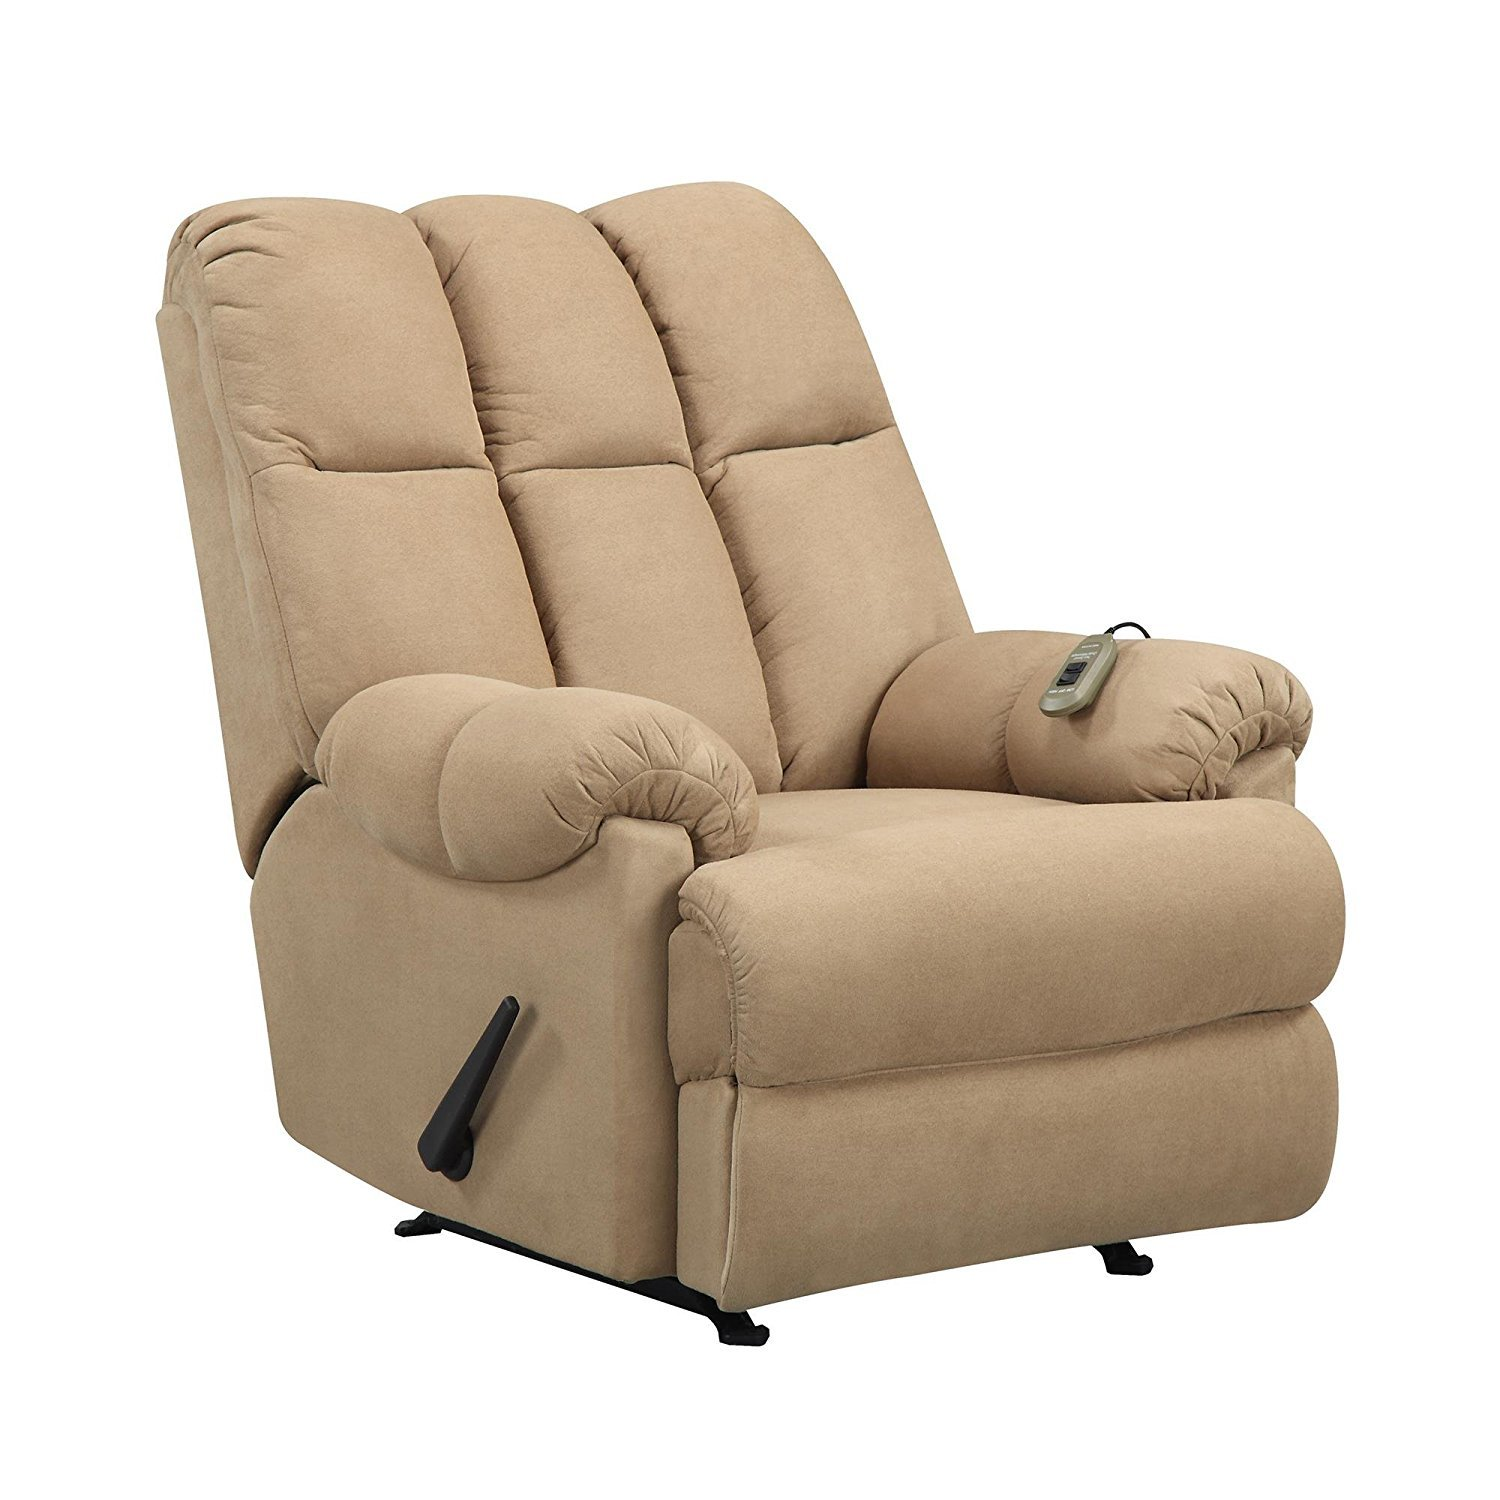 Recliners On Sale Under 200